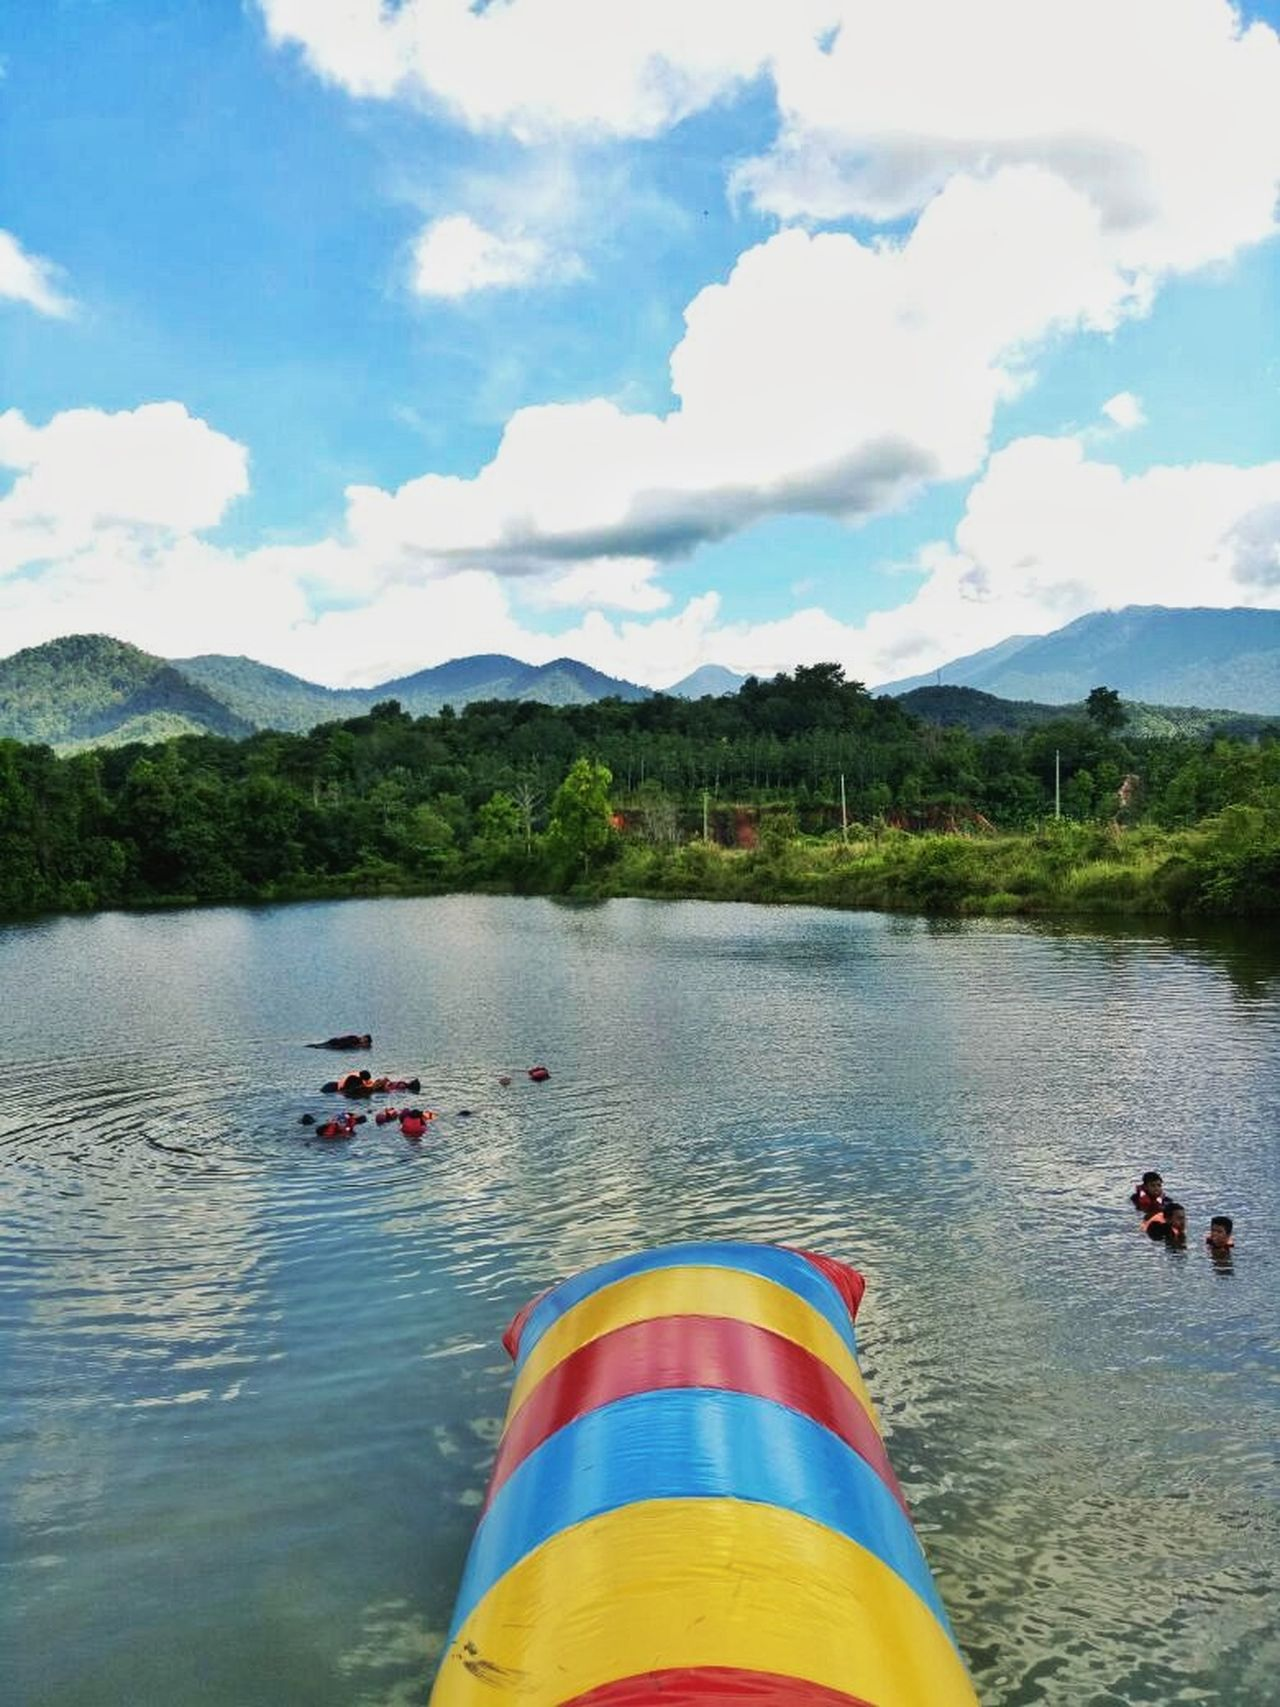 Water blob 💦🏃 Mountain Water Reflection Lake Day Outdoors Mountain Range Leisure Activity Multi Colored Sky People Nature Ulu Slim Perak Darul Ridzuan, Malaysia